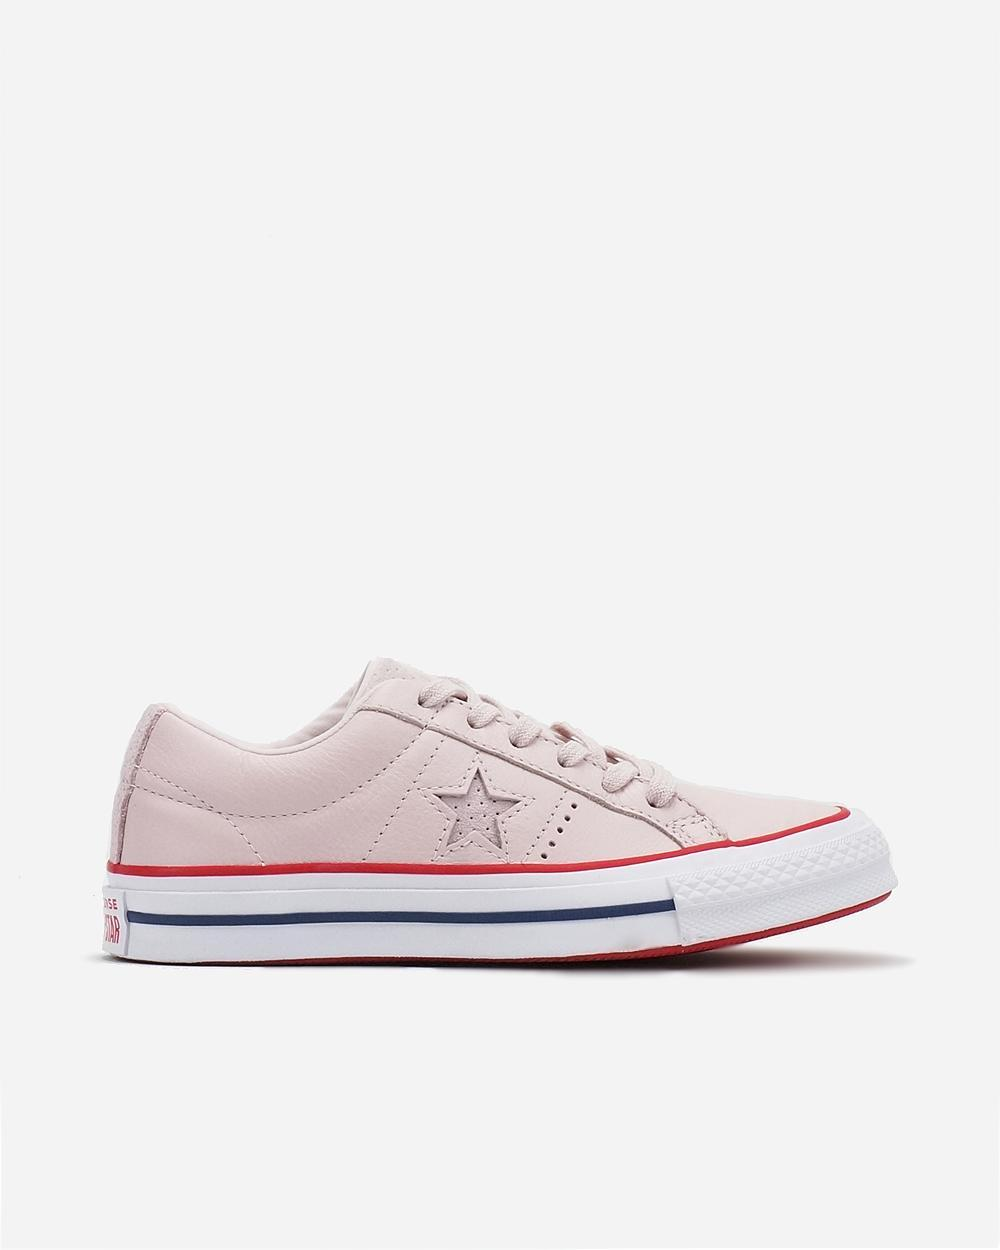 Converse One Star New Heritage Barely Rose Gym Red White Womens Sneaker  160623 272a534c7